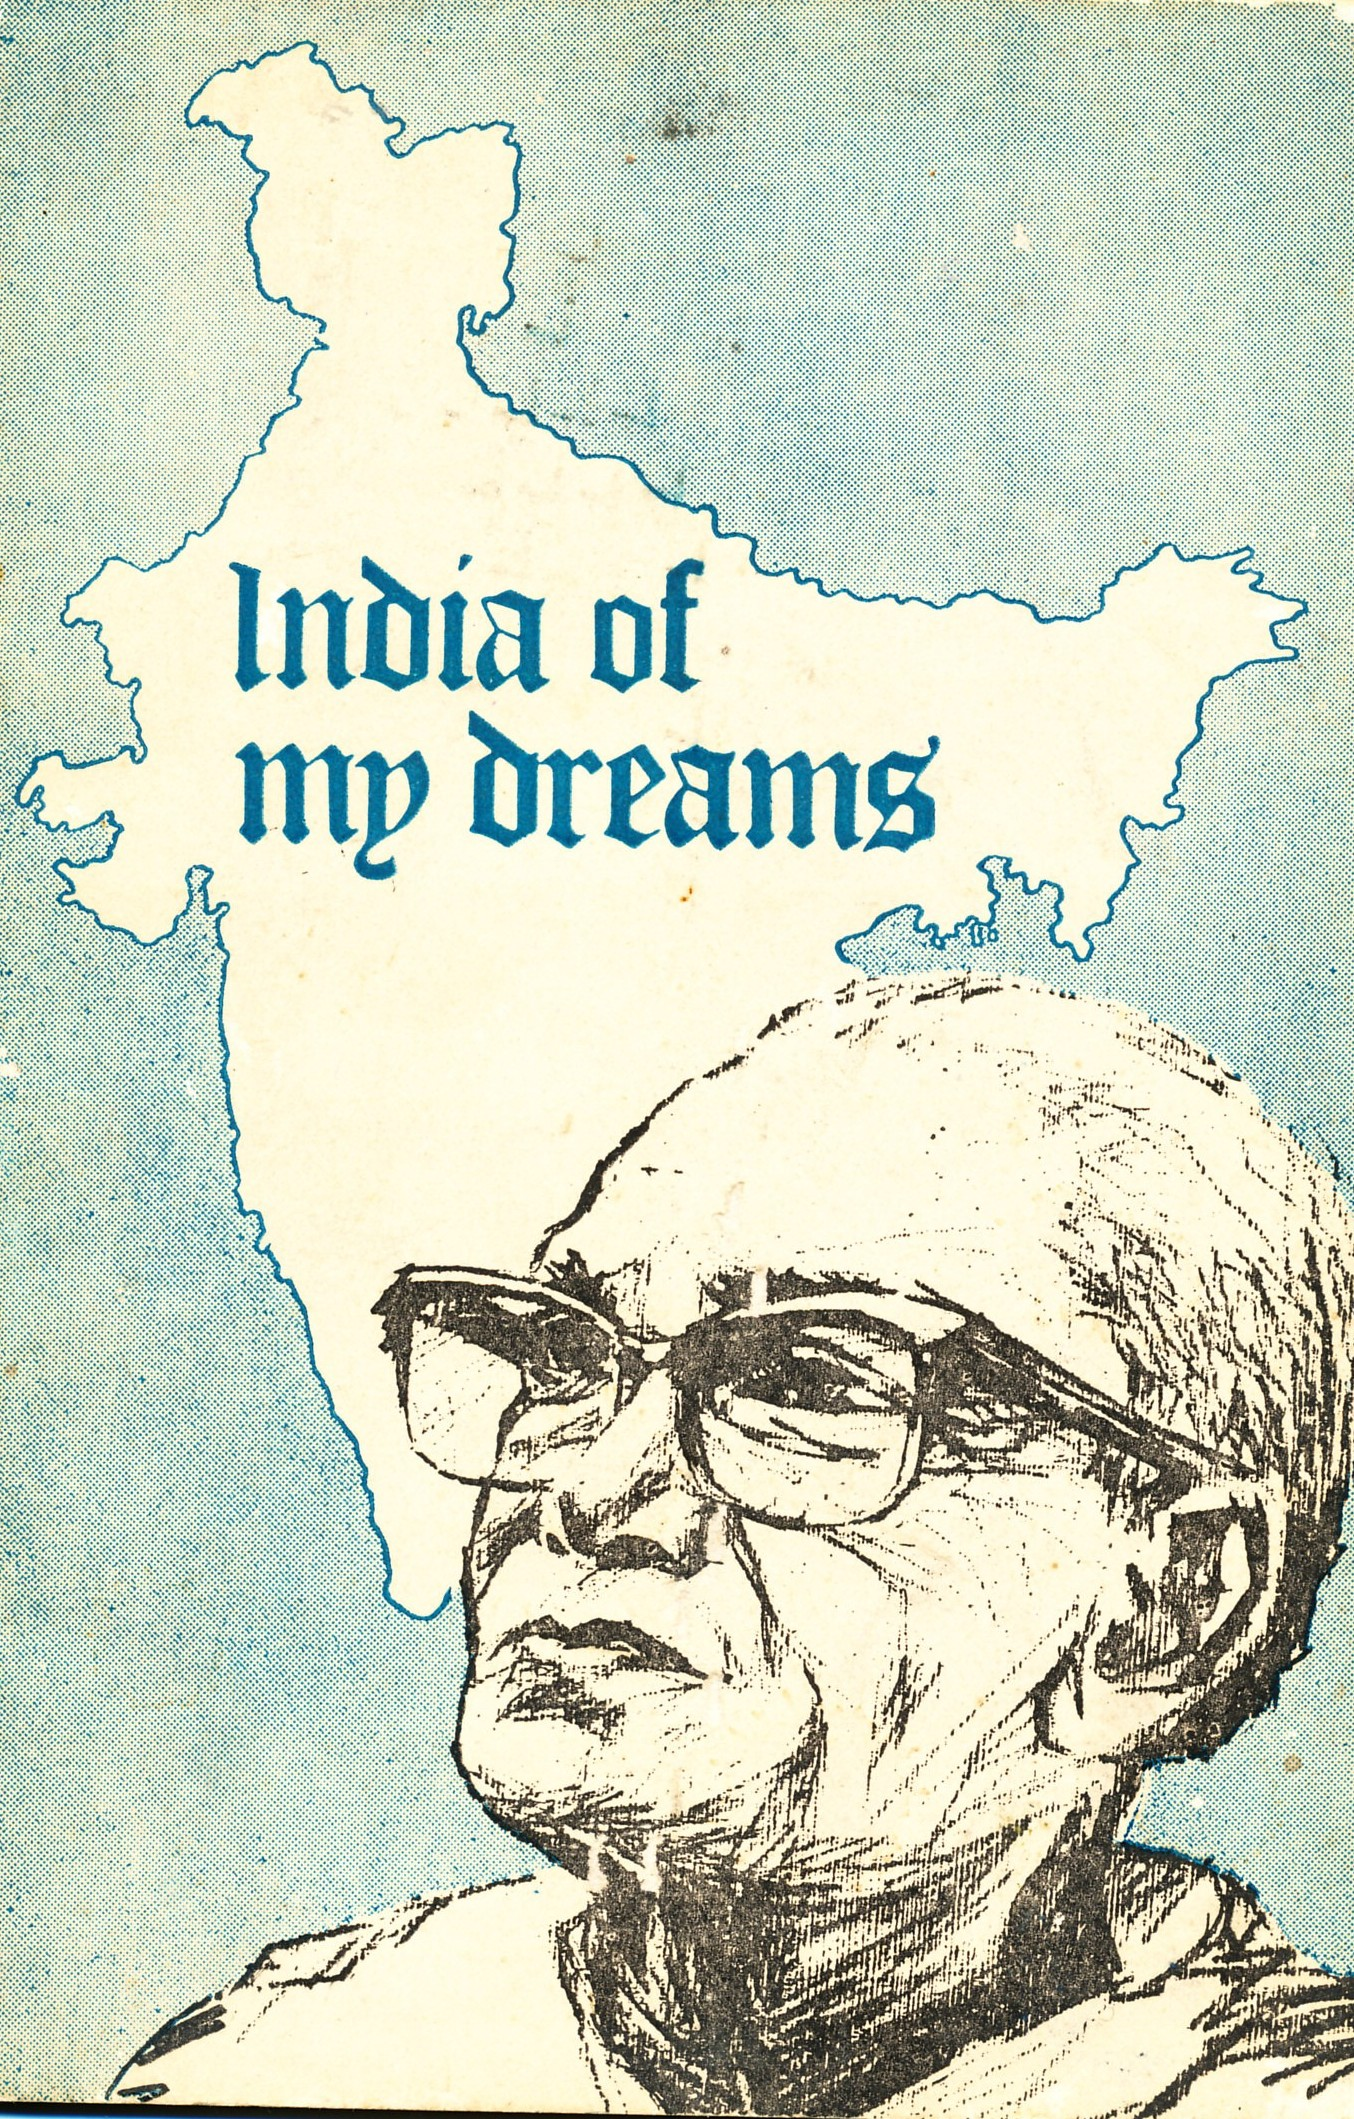 Short Essay on India of My Dreams - Important India